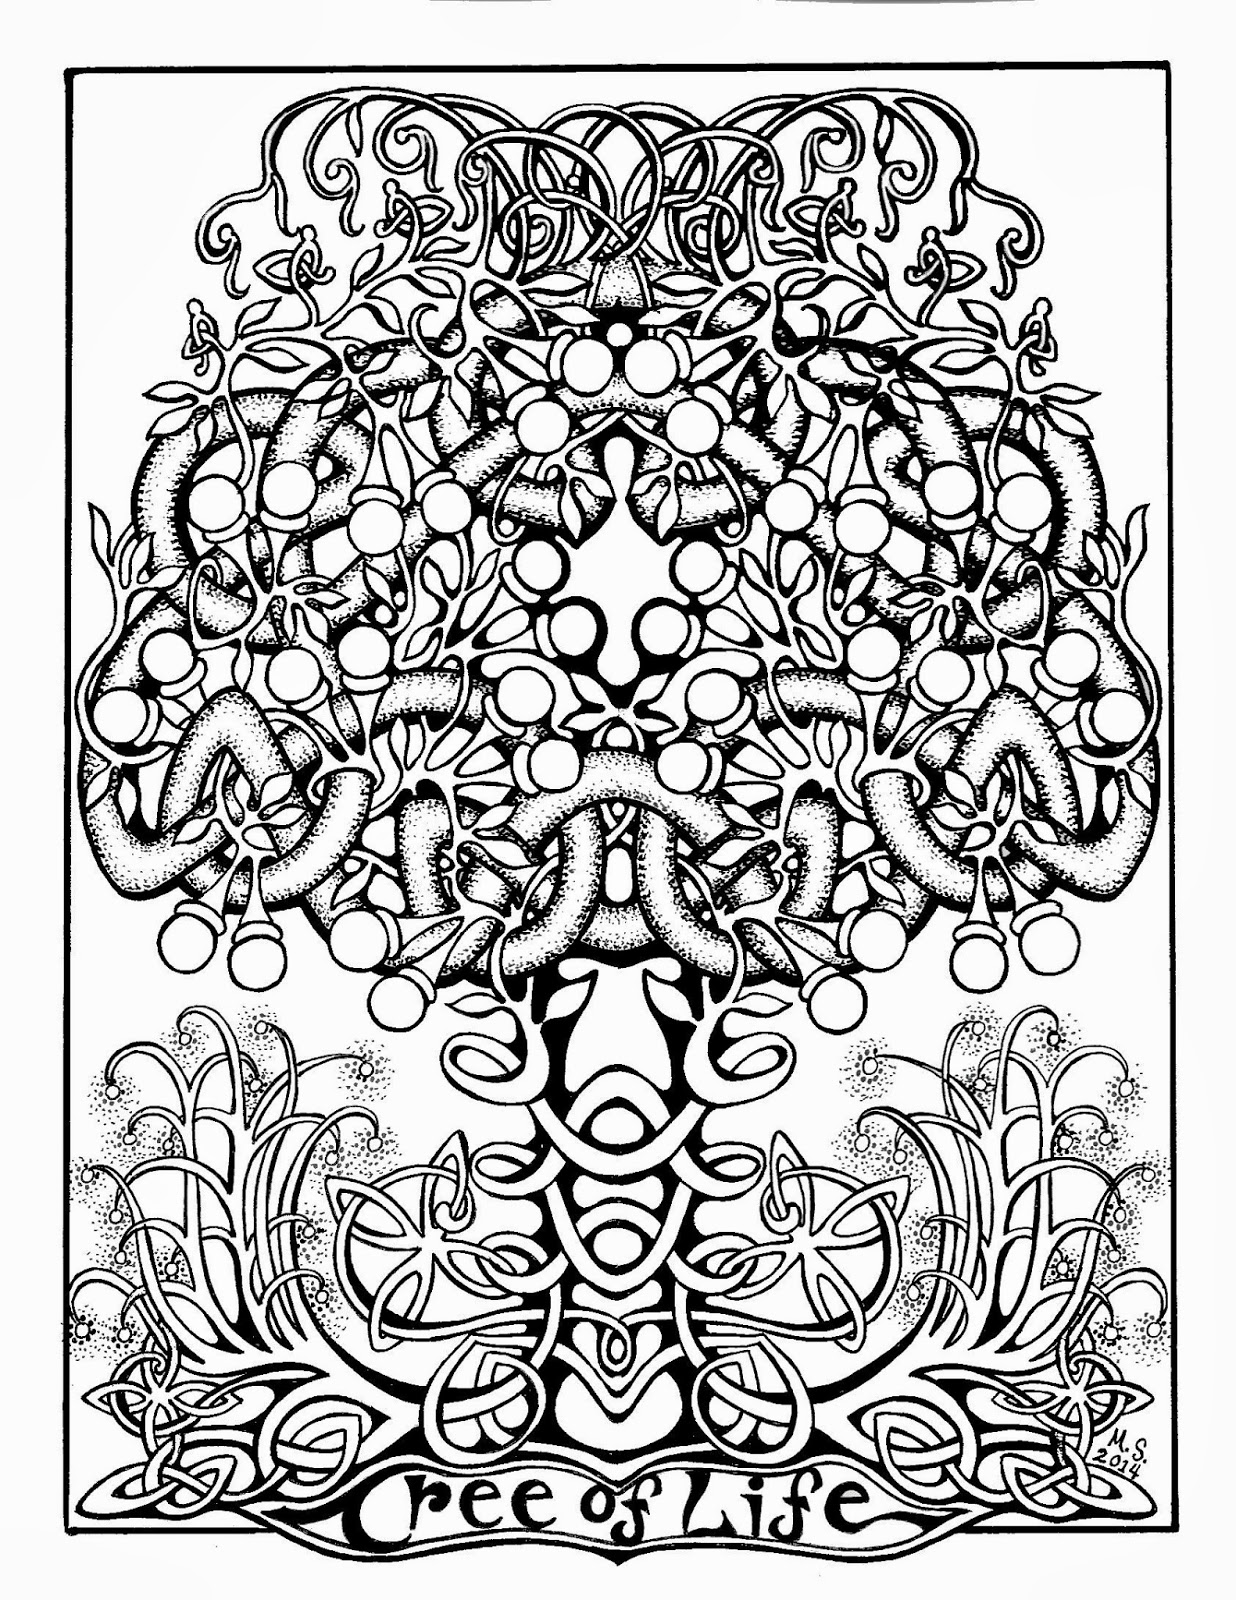 tree of life coloring tree of life by ellfideviantartcom on deviantart life tree coloring of